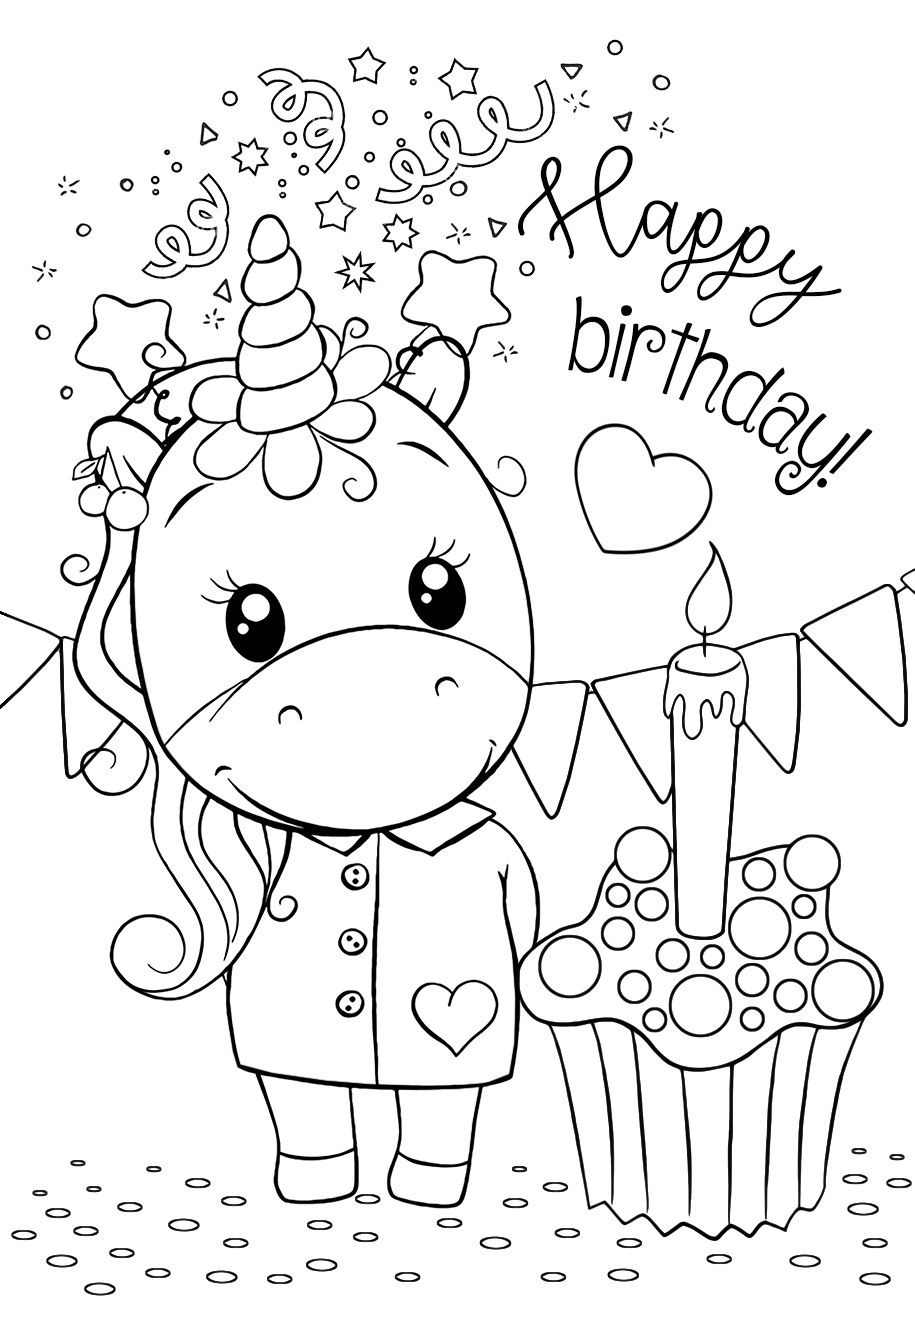 Happy birthday unicorn coloring pages